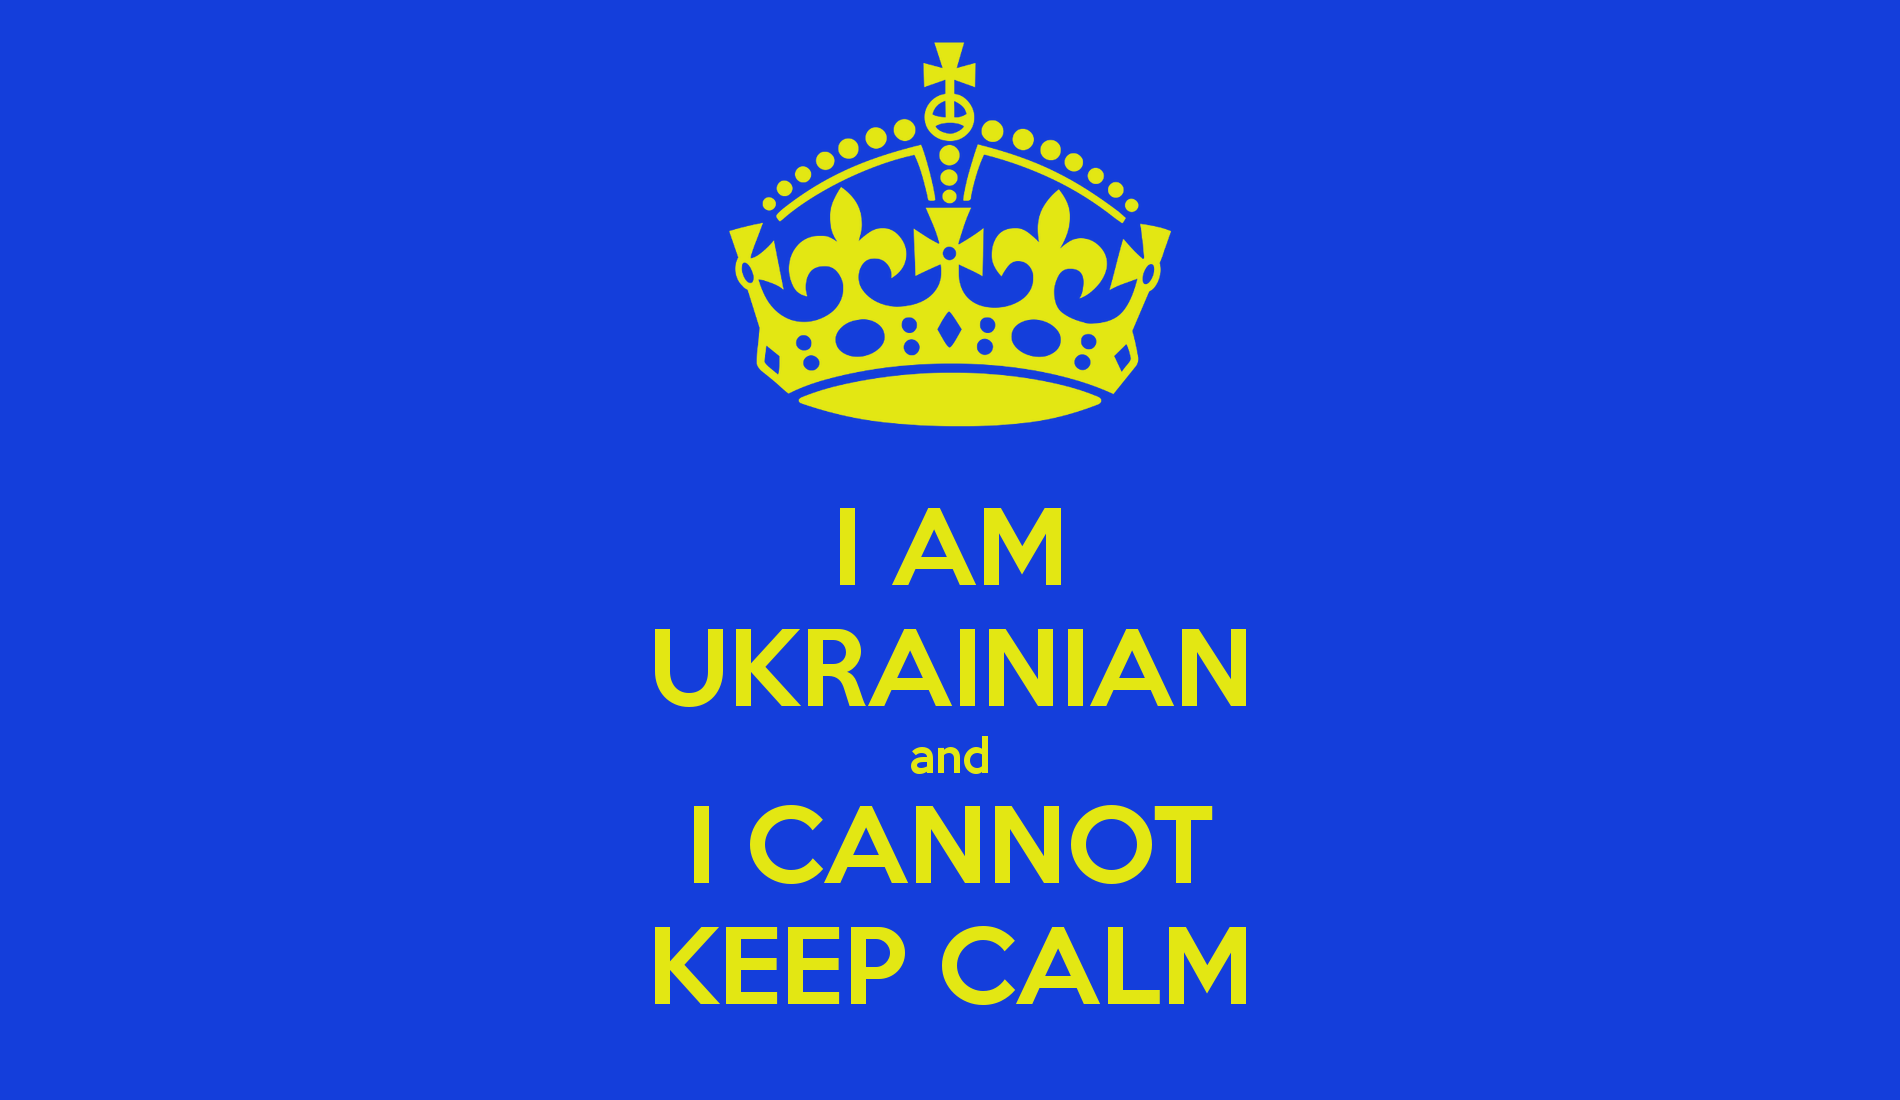 i-am-ukrainian-and-i-cannot-keep-calm-9